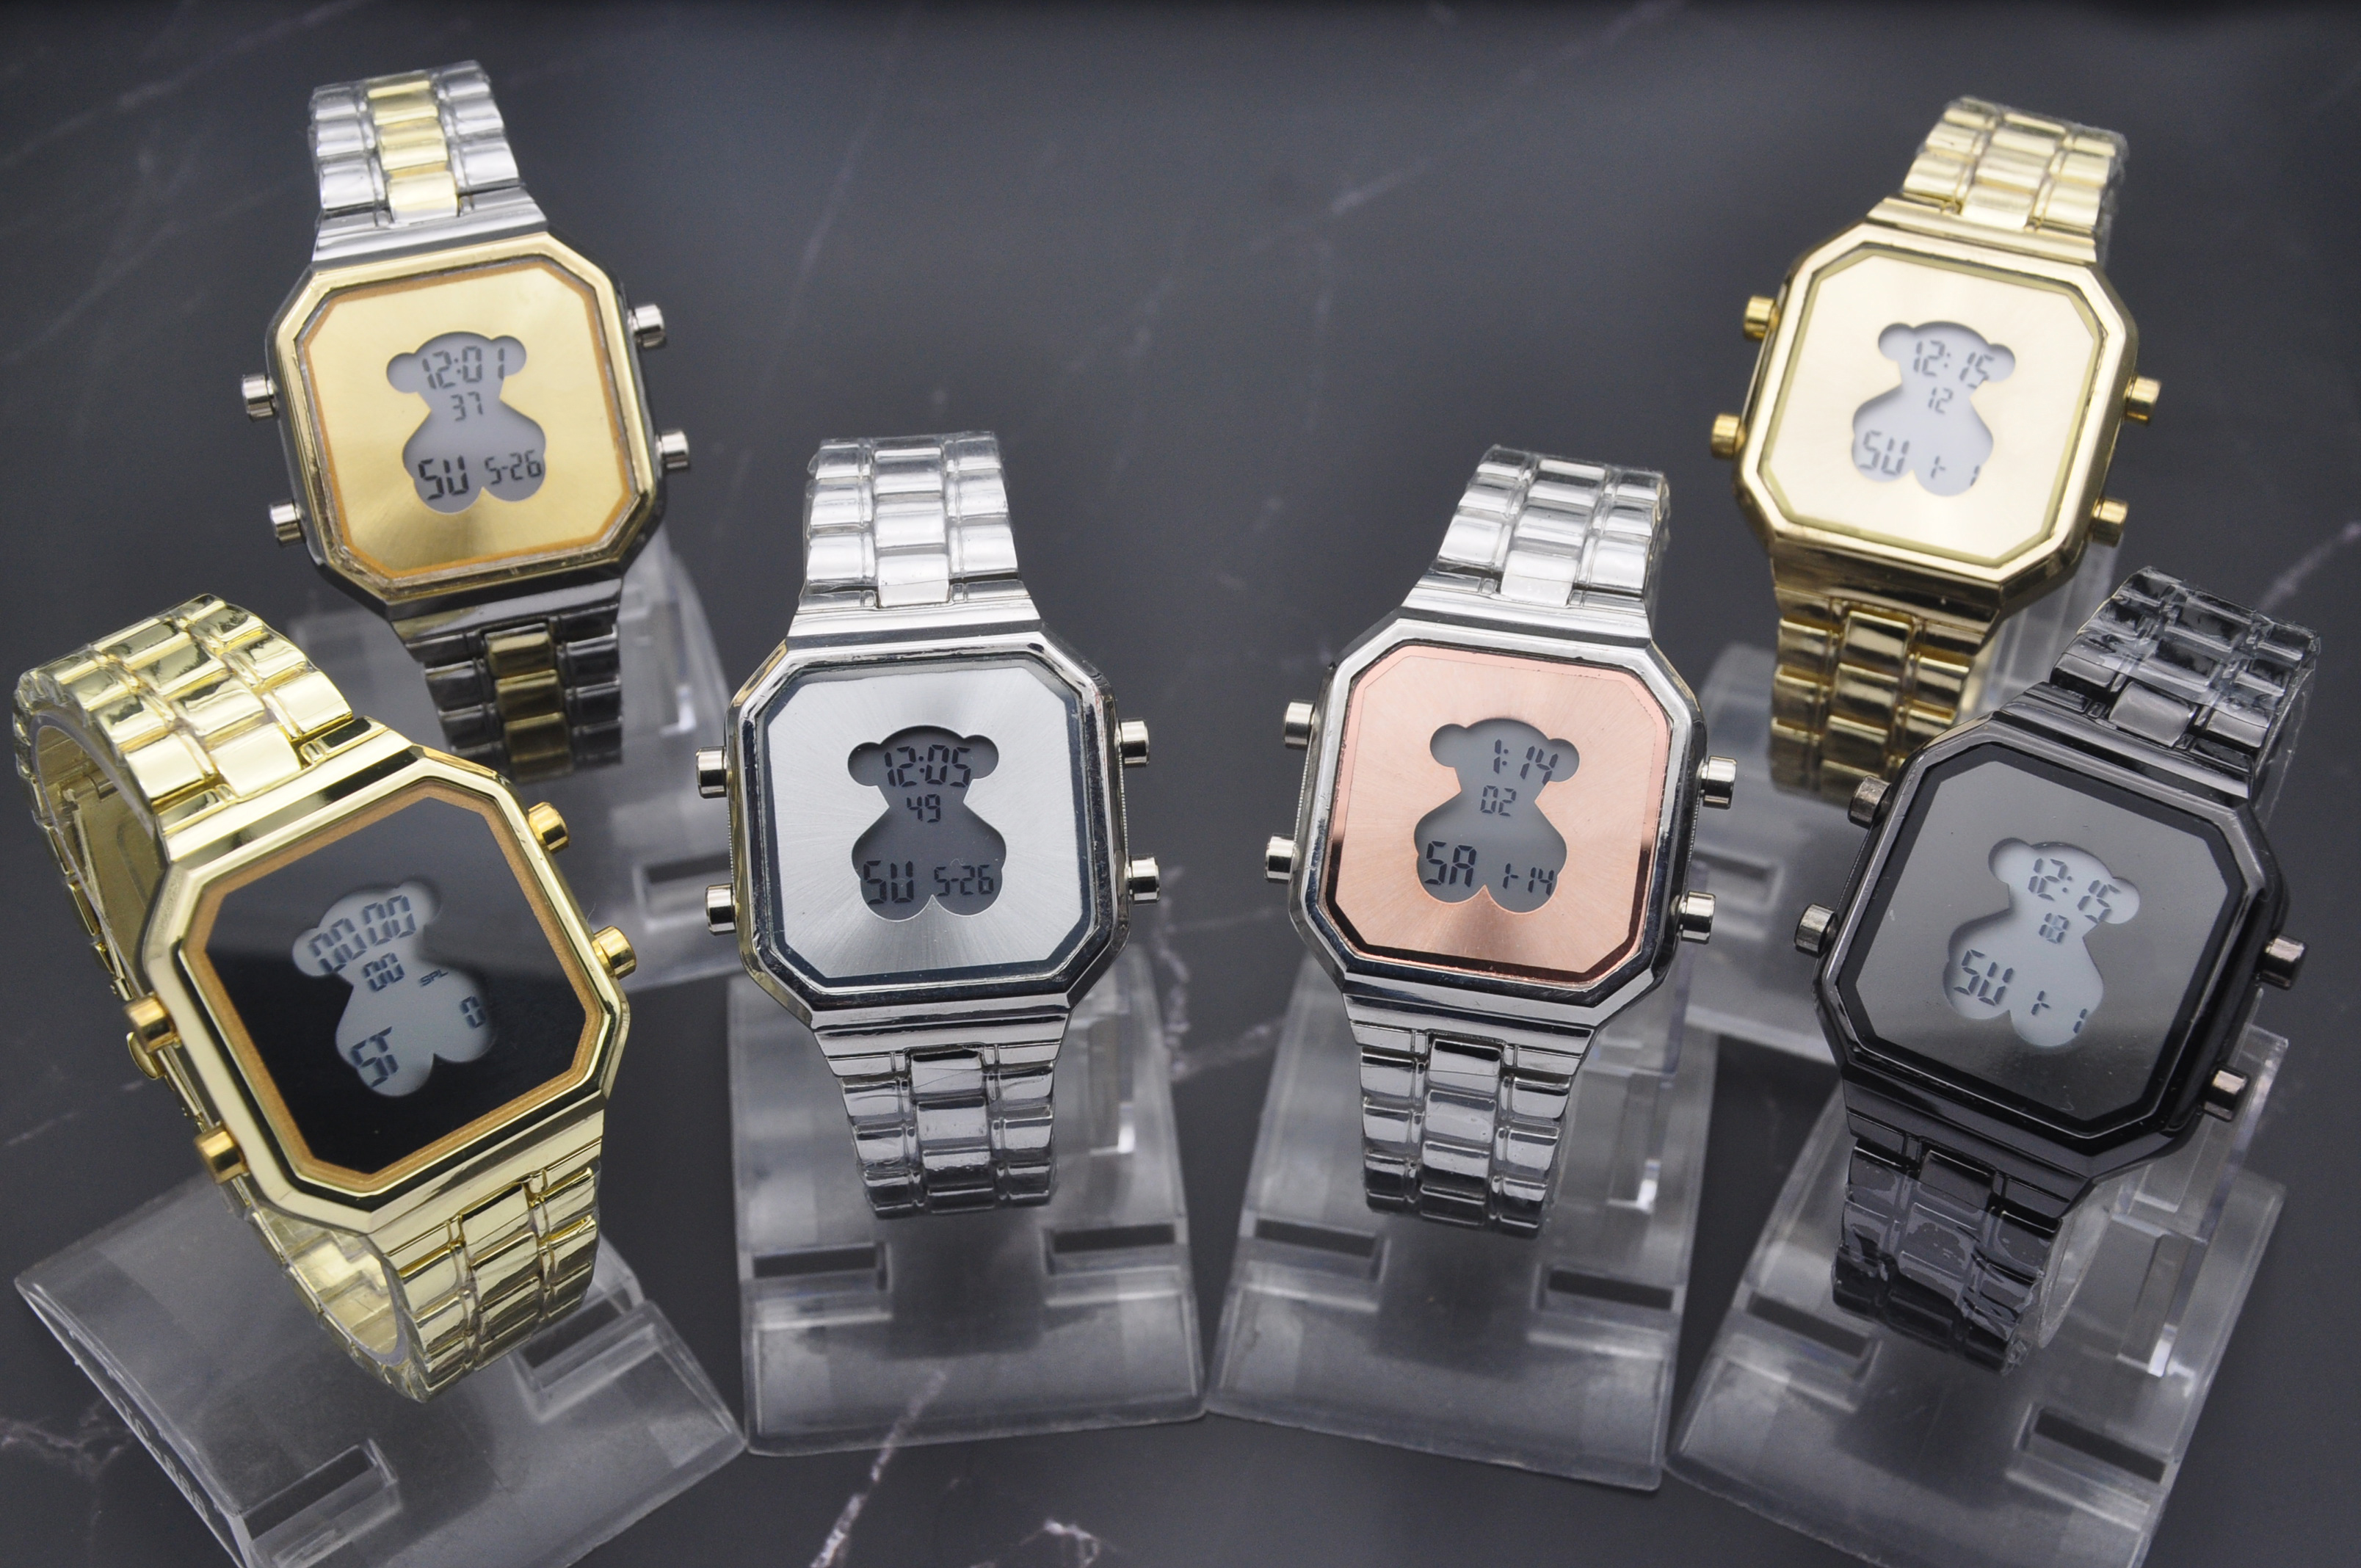 2019 Ebay Hot Sells Stainless Steel Watch Bear Digital Watch Reloj digital